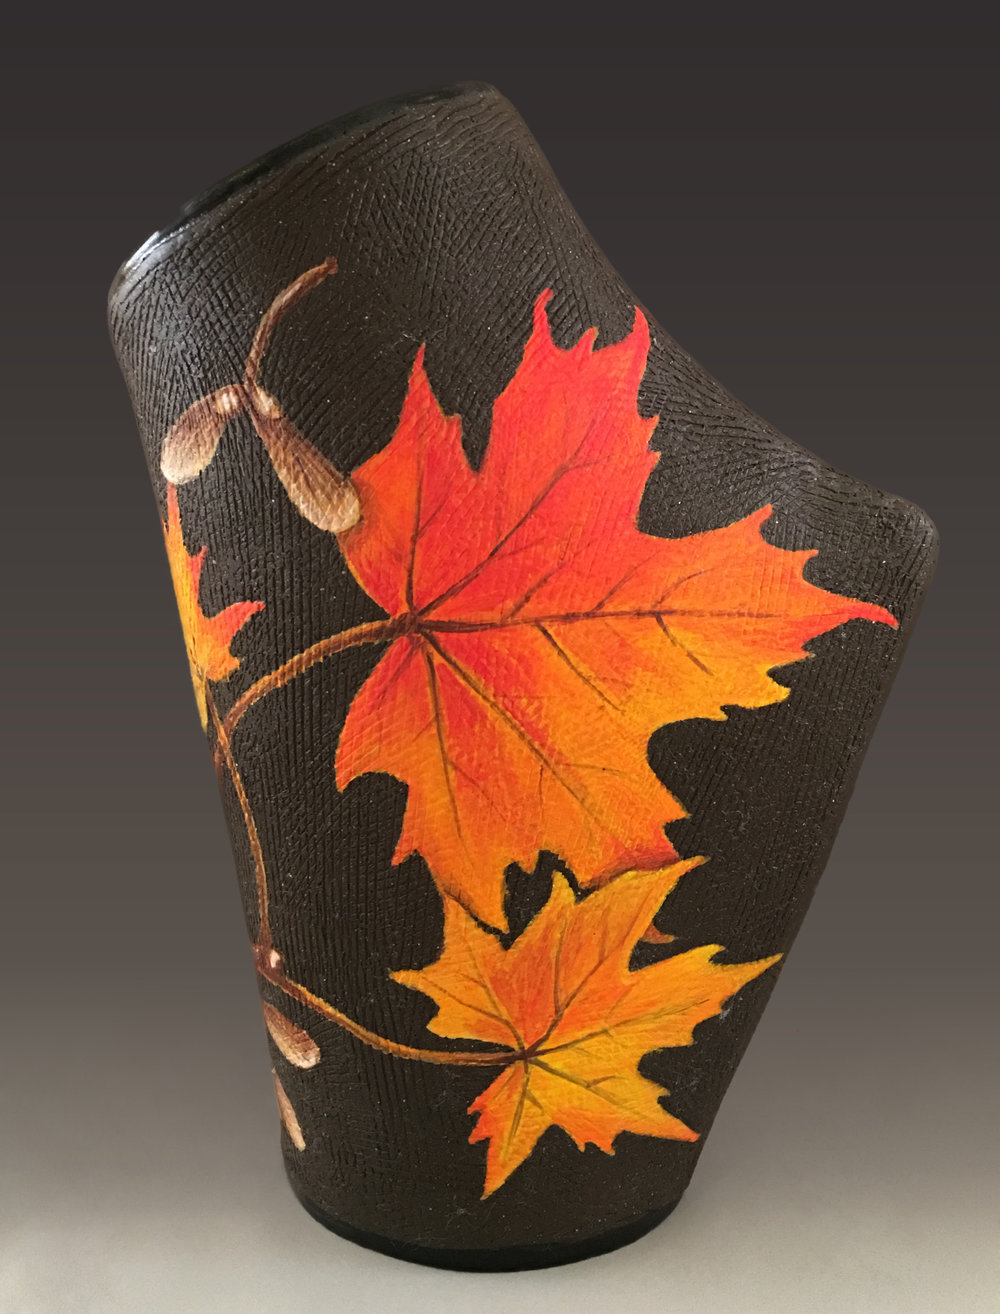 HONORABLE MENTION  - Marina Smelik | Flaming Maples | Ceramics